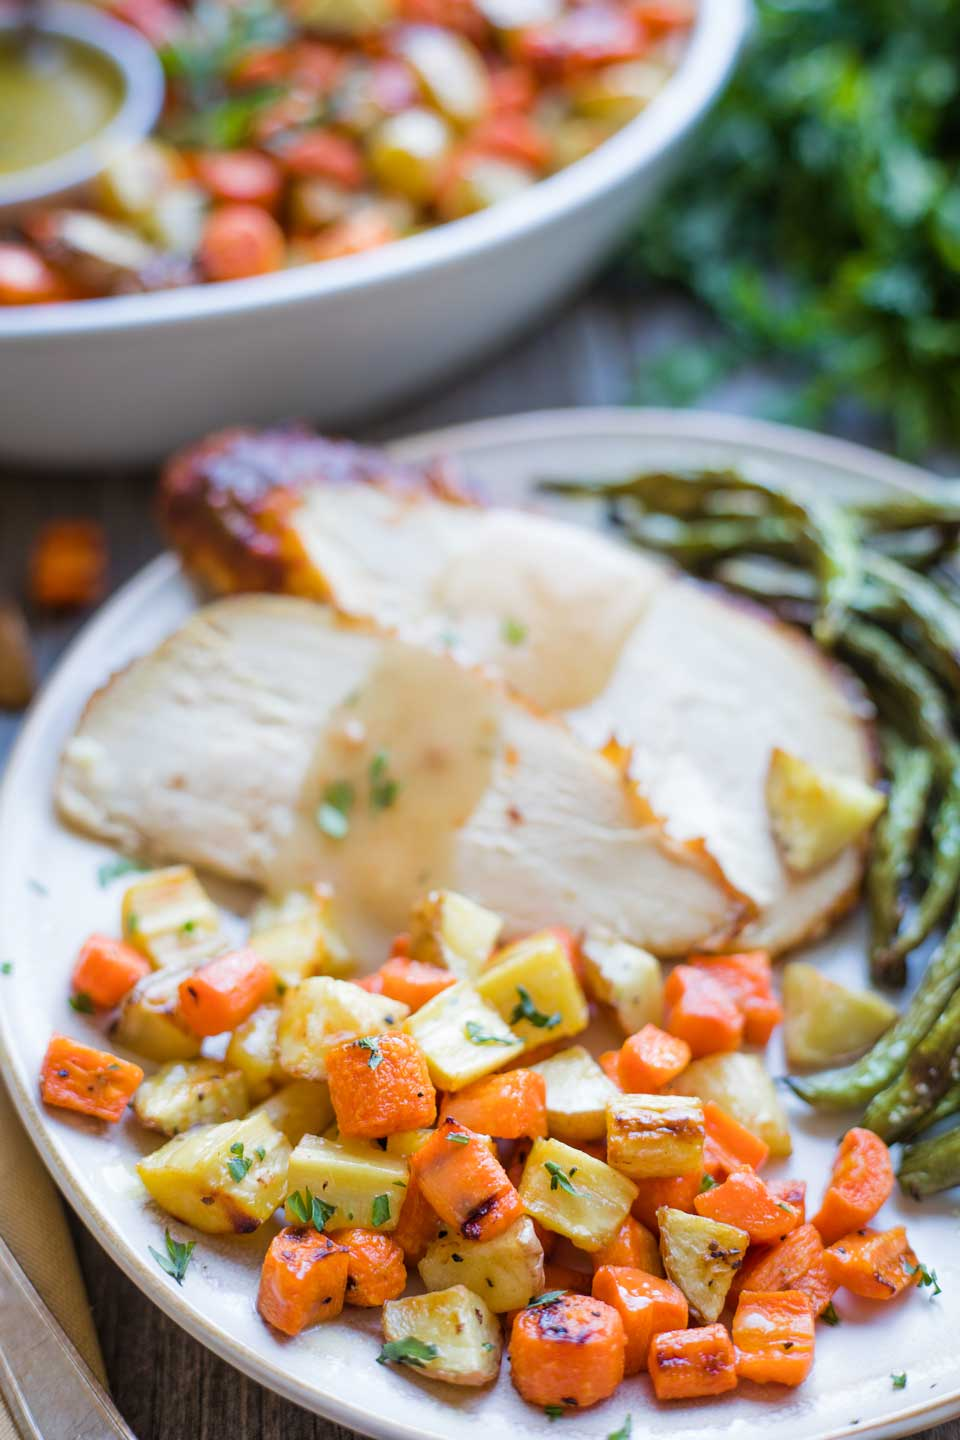 Roasted carrots, potatoes and parsnips piled on dinner plate next to turkey and gravy, and roasted green beans